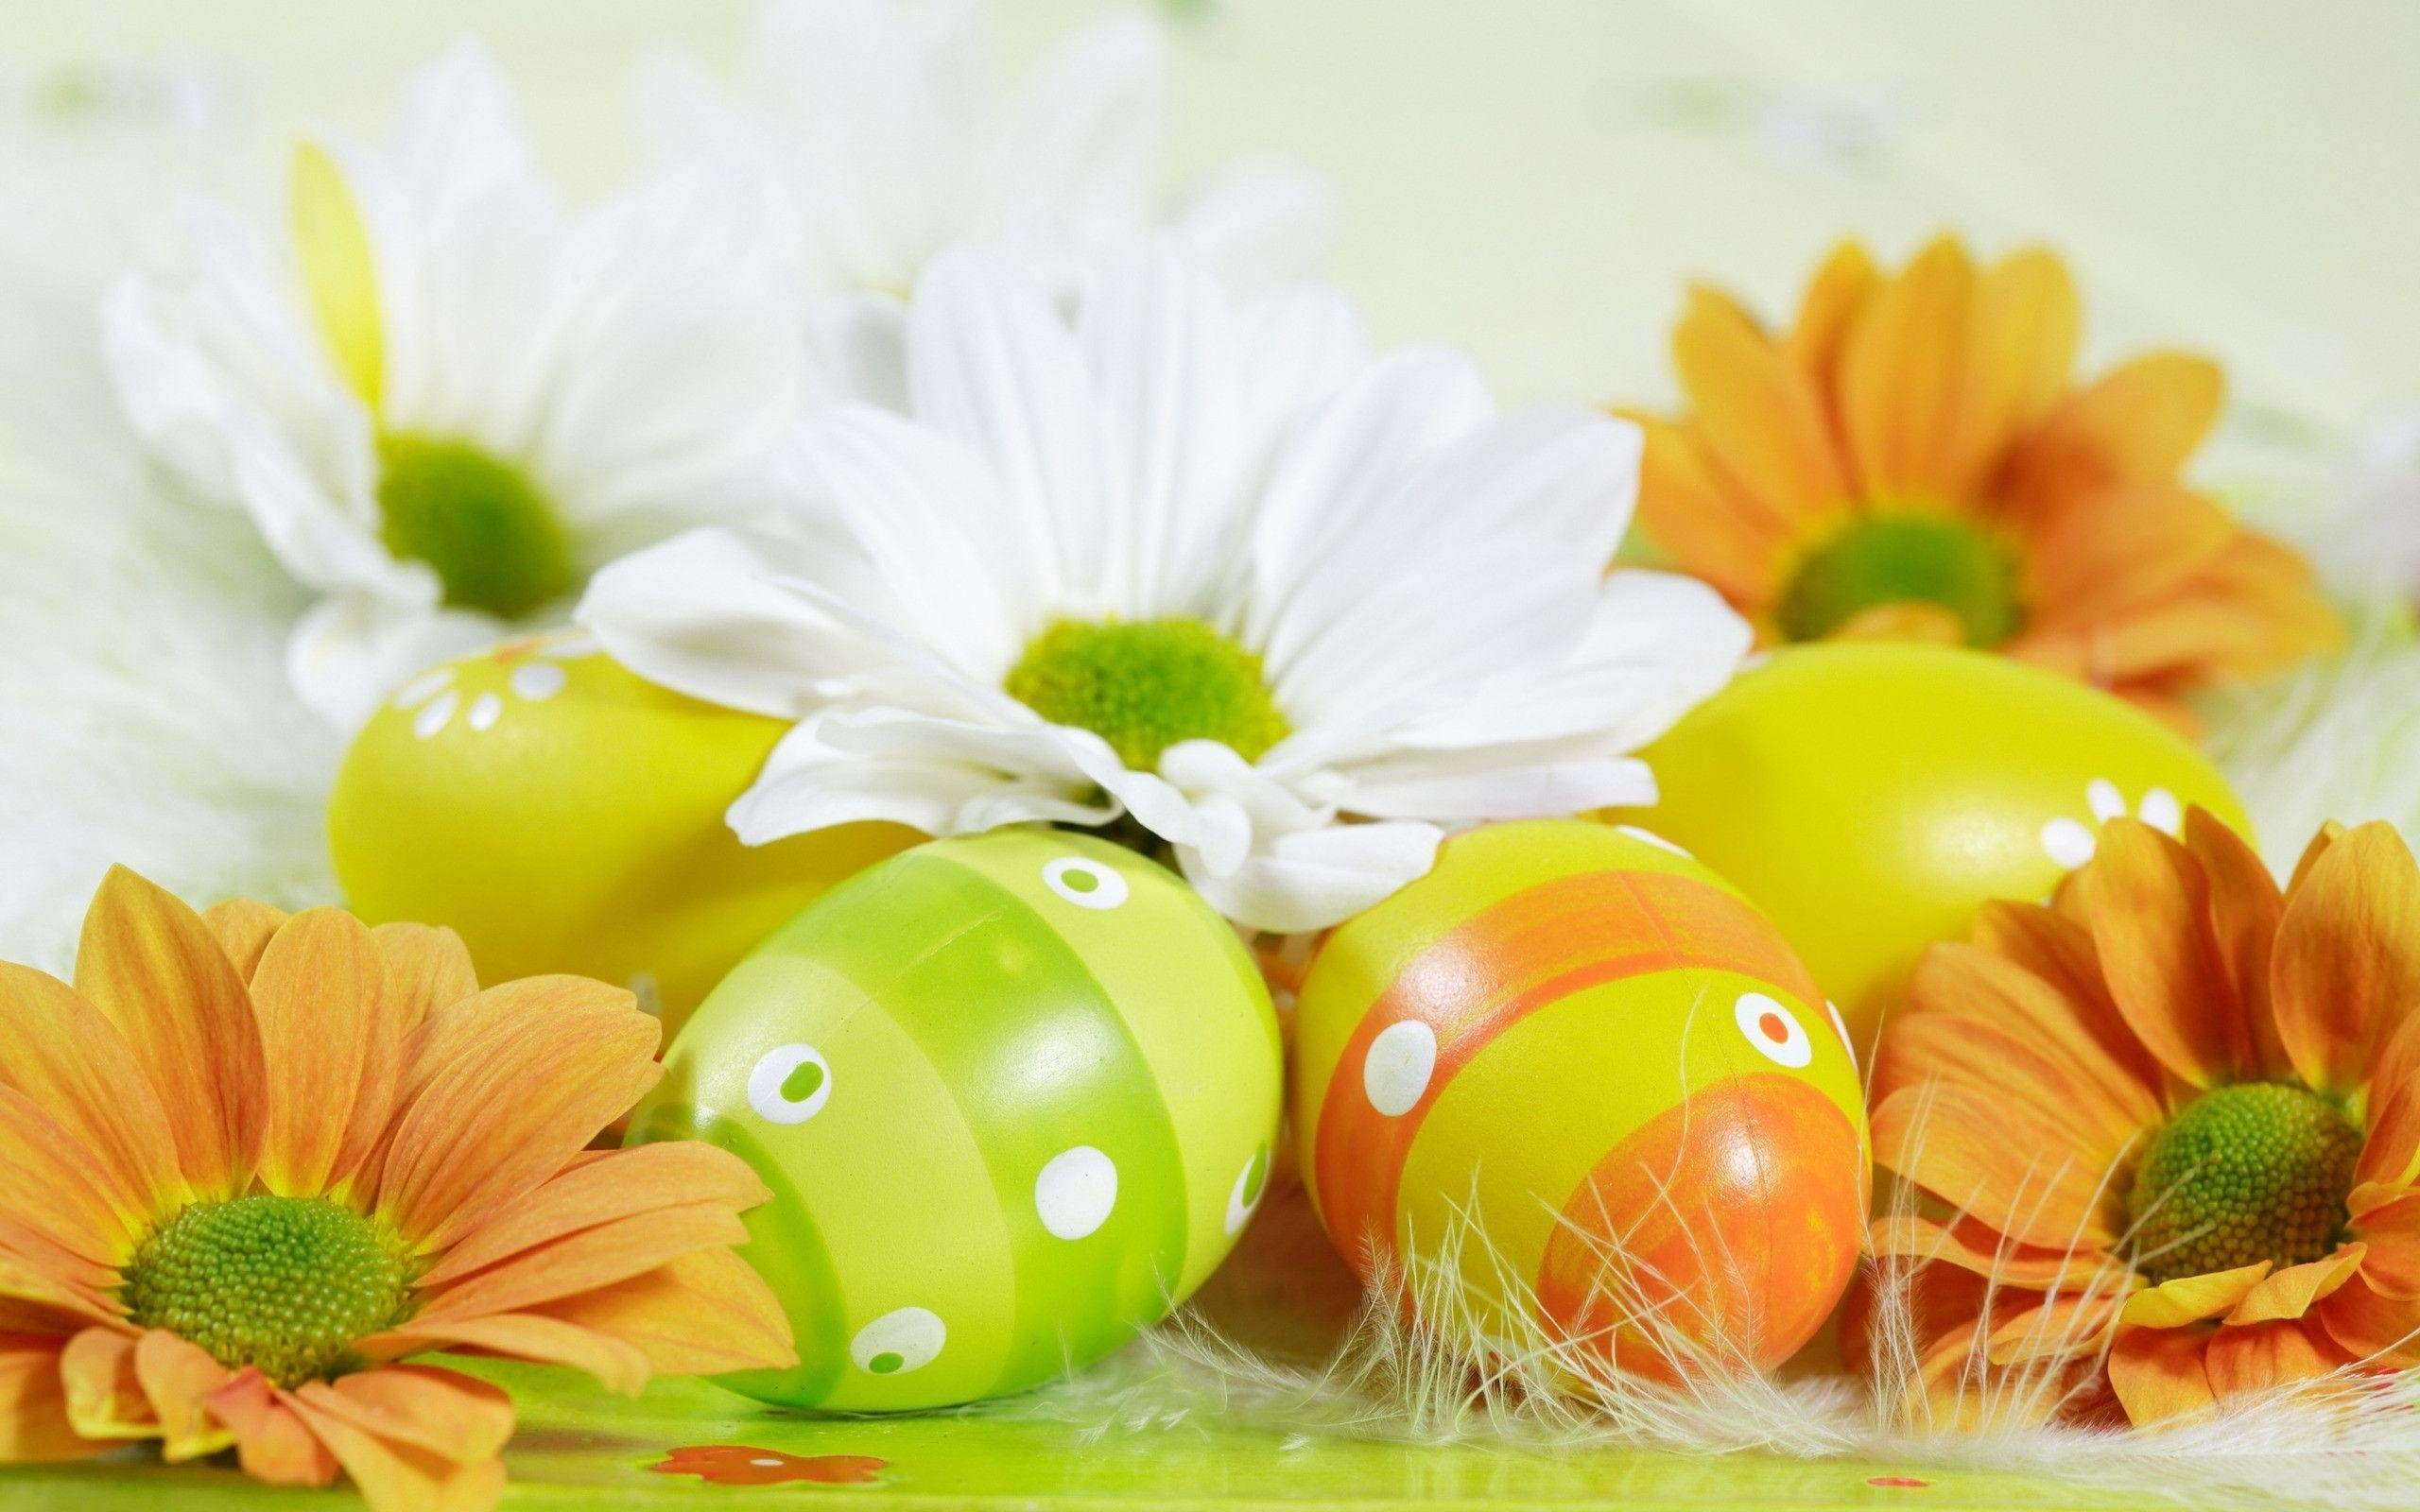 10 Most Popular Free Easter Wallpapers For Desktop FULL HD 1920×1080 For PC Background